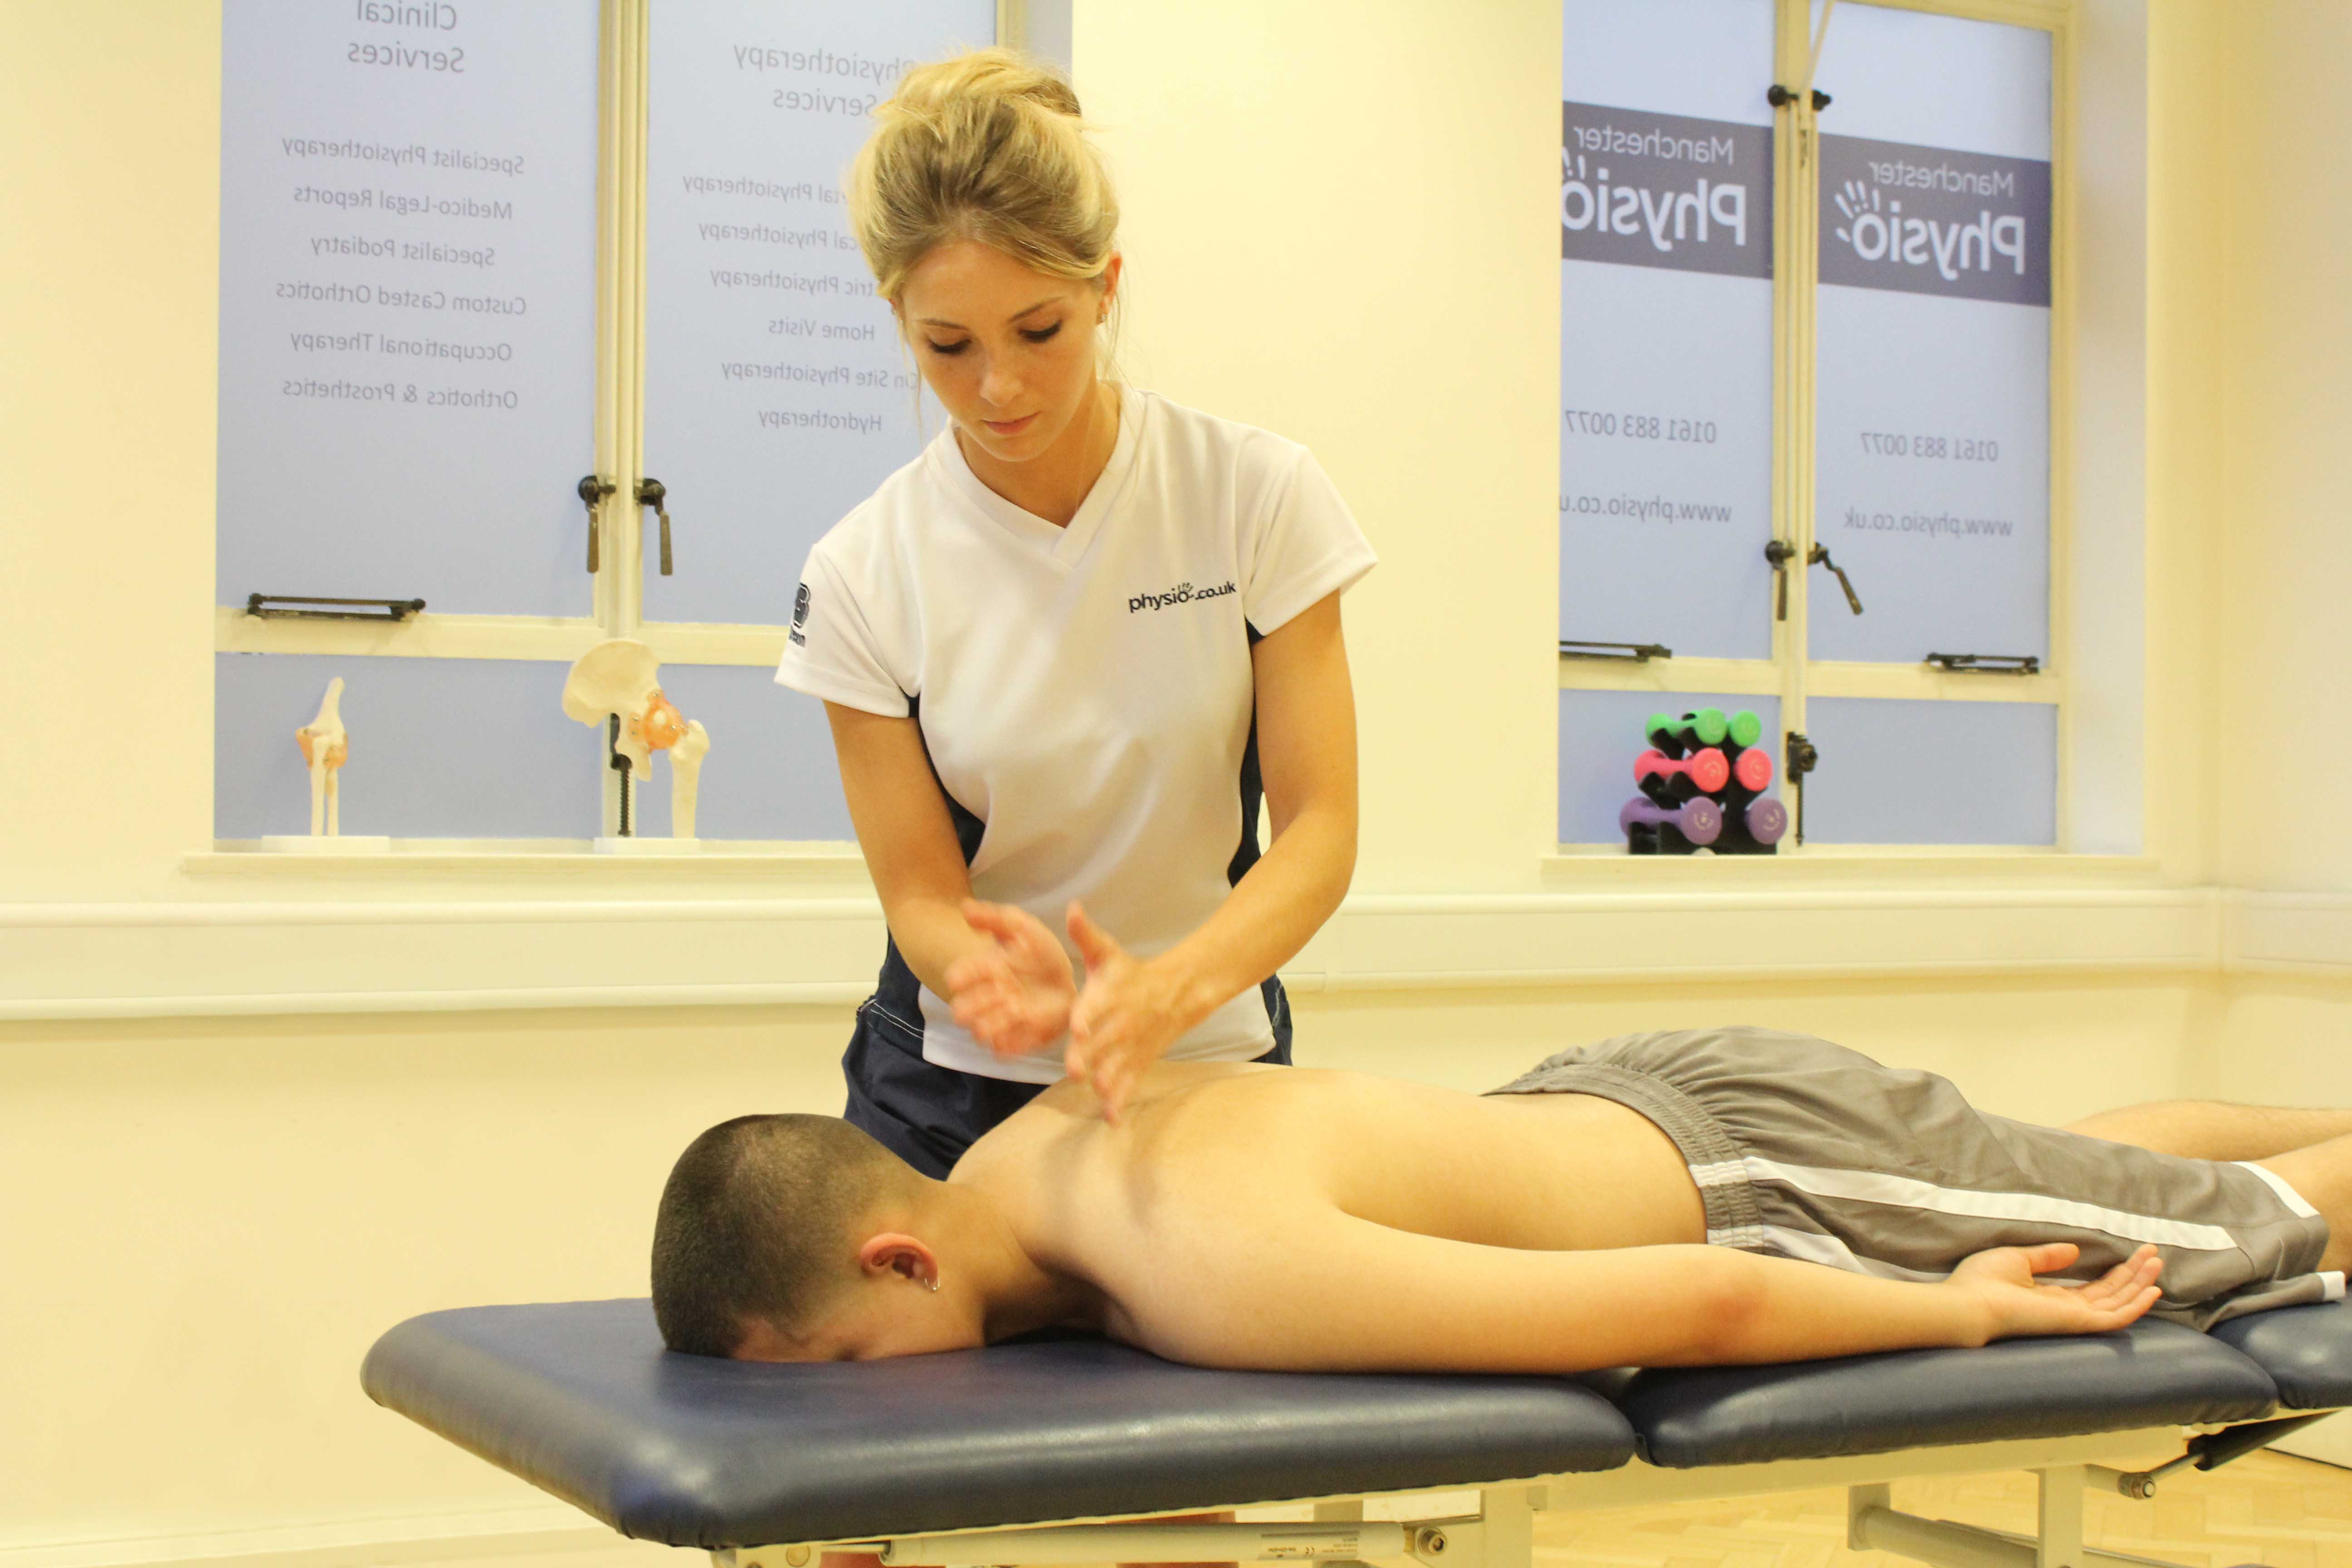 Hacking percussion soft tissue massage from a specialist massage therapist